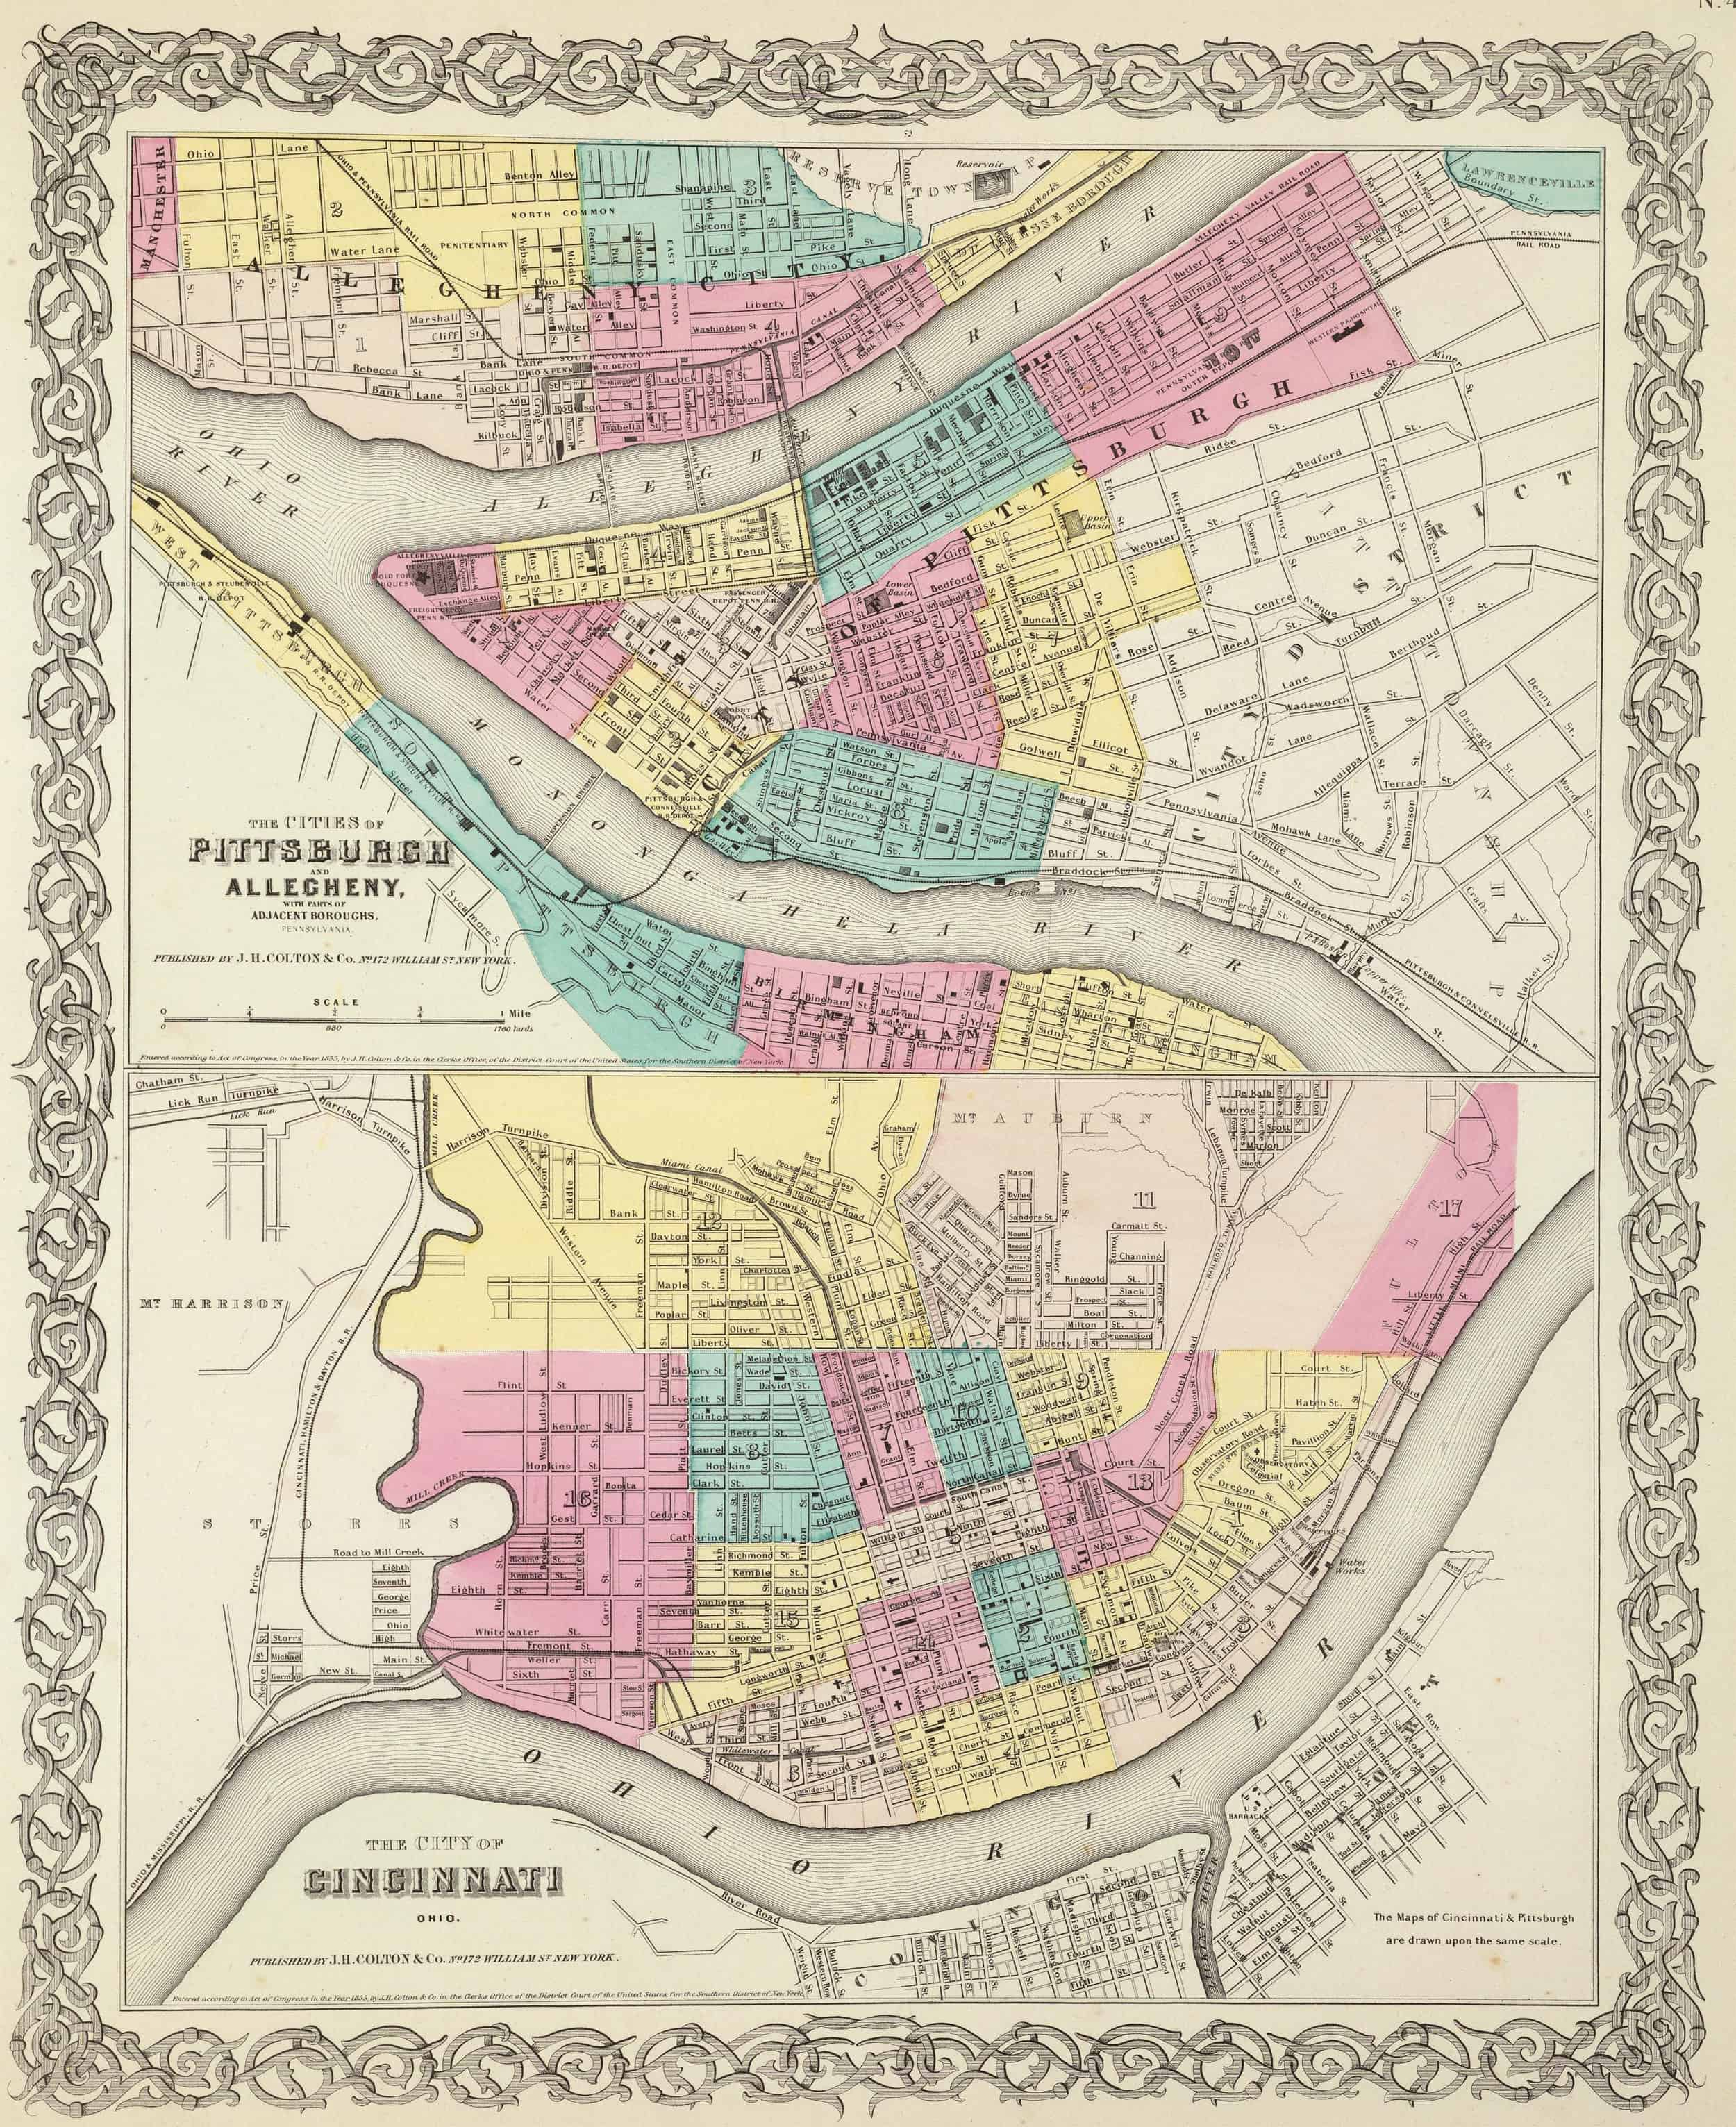 Old Historical City, County and State Maps of Pennsylvania ... on state of pa map, cowansville pa map, schuylkill river pa map, north strabane pa map, baldwin pa map, manns choice pa map, york pa map, centre hall pa map, huntingdon valley pa map, emporium pa map, bear rocks pa map, bucks co pa map, south hills pa map, karns city pa map, barkeyville pa map, red land pa map, hilliards pa map, greensburg pa map, rosslyn farms pa map, east pittsburgh pa map,